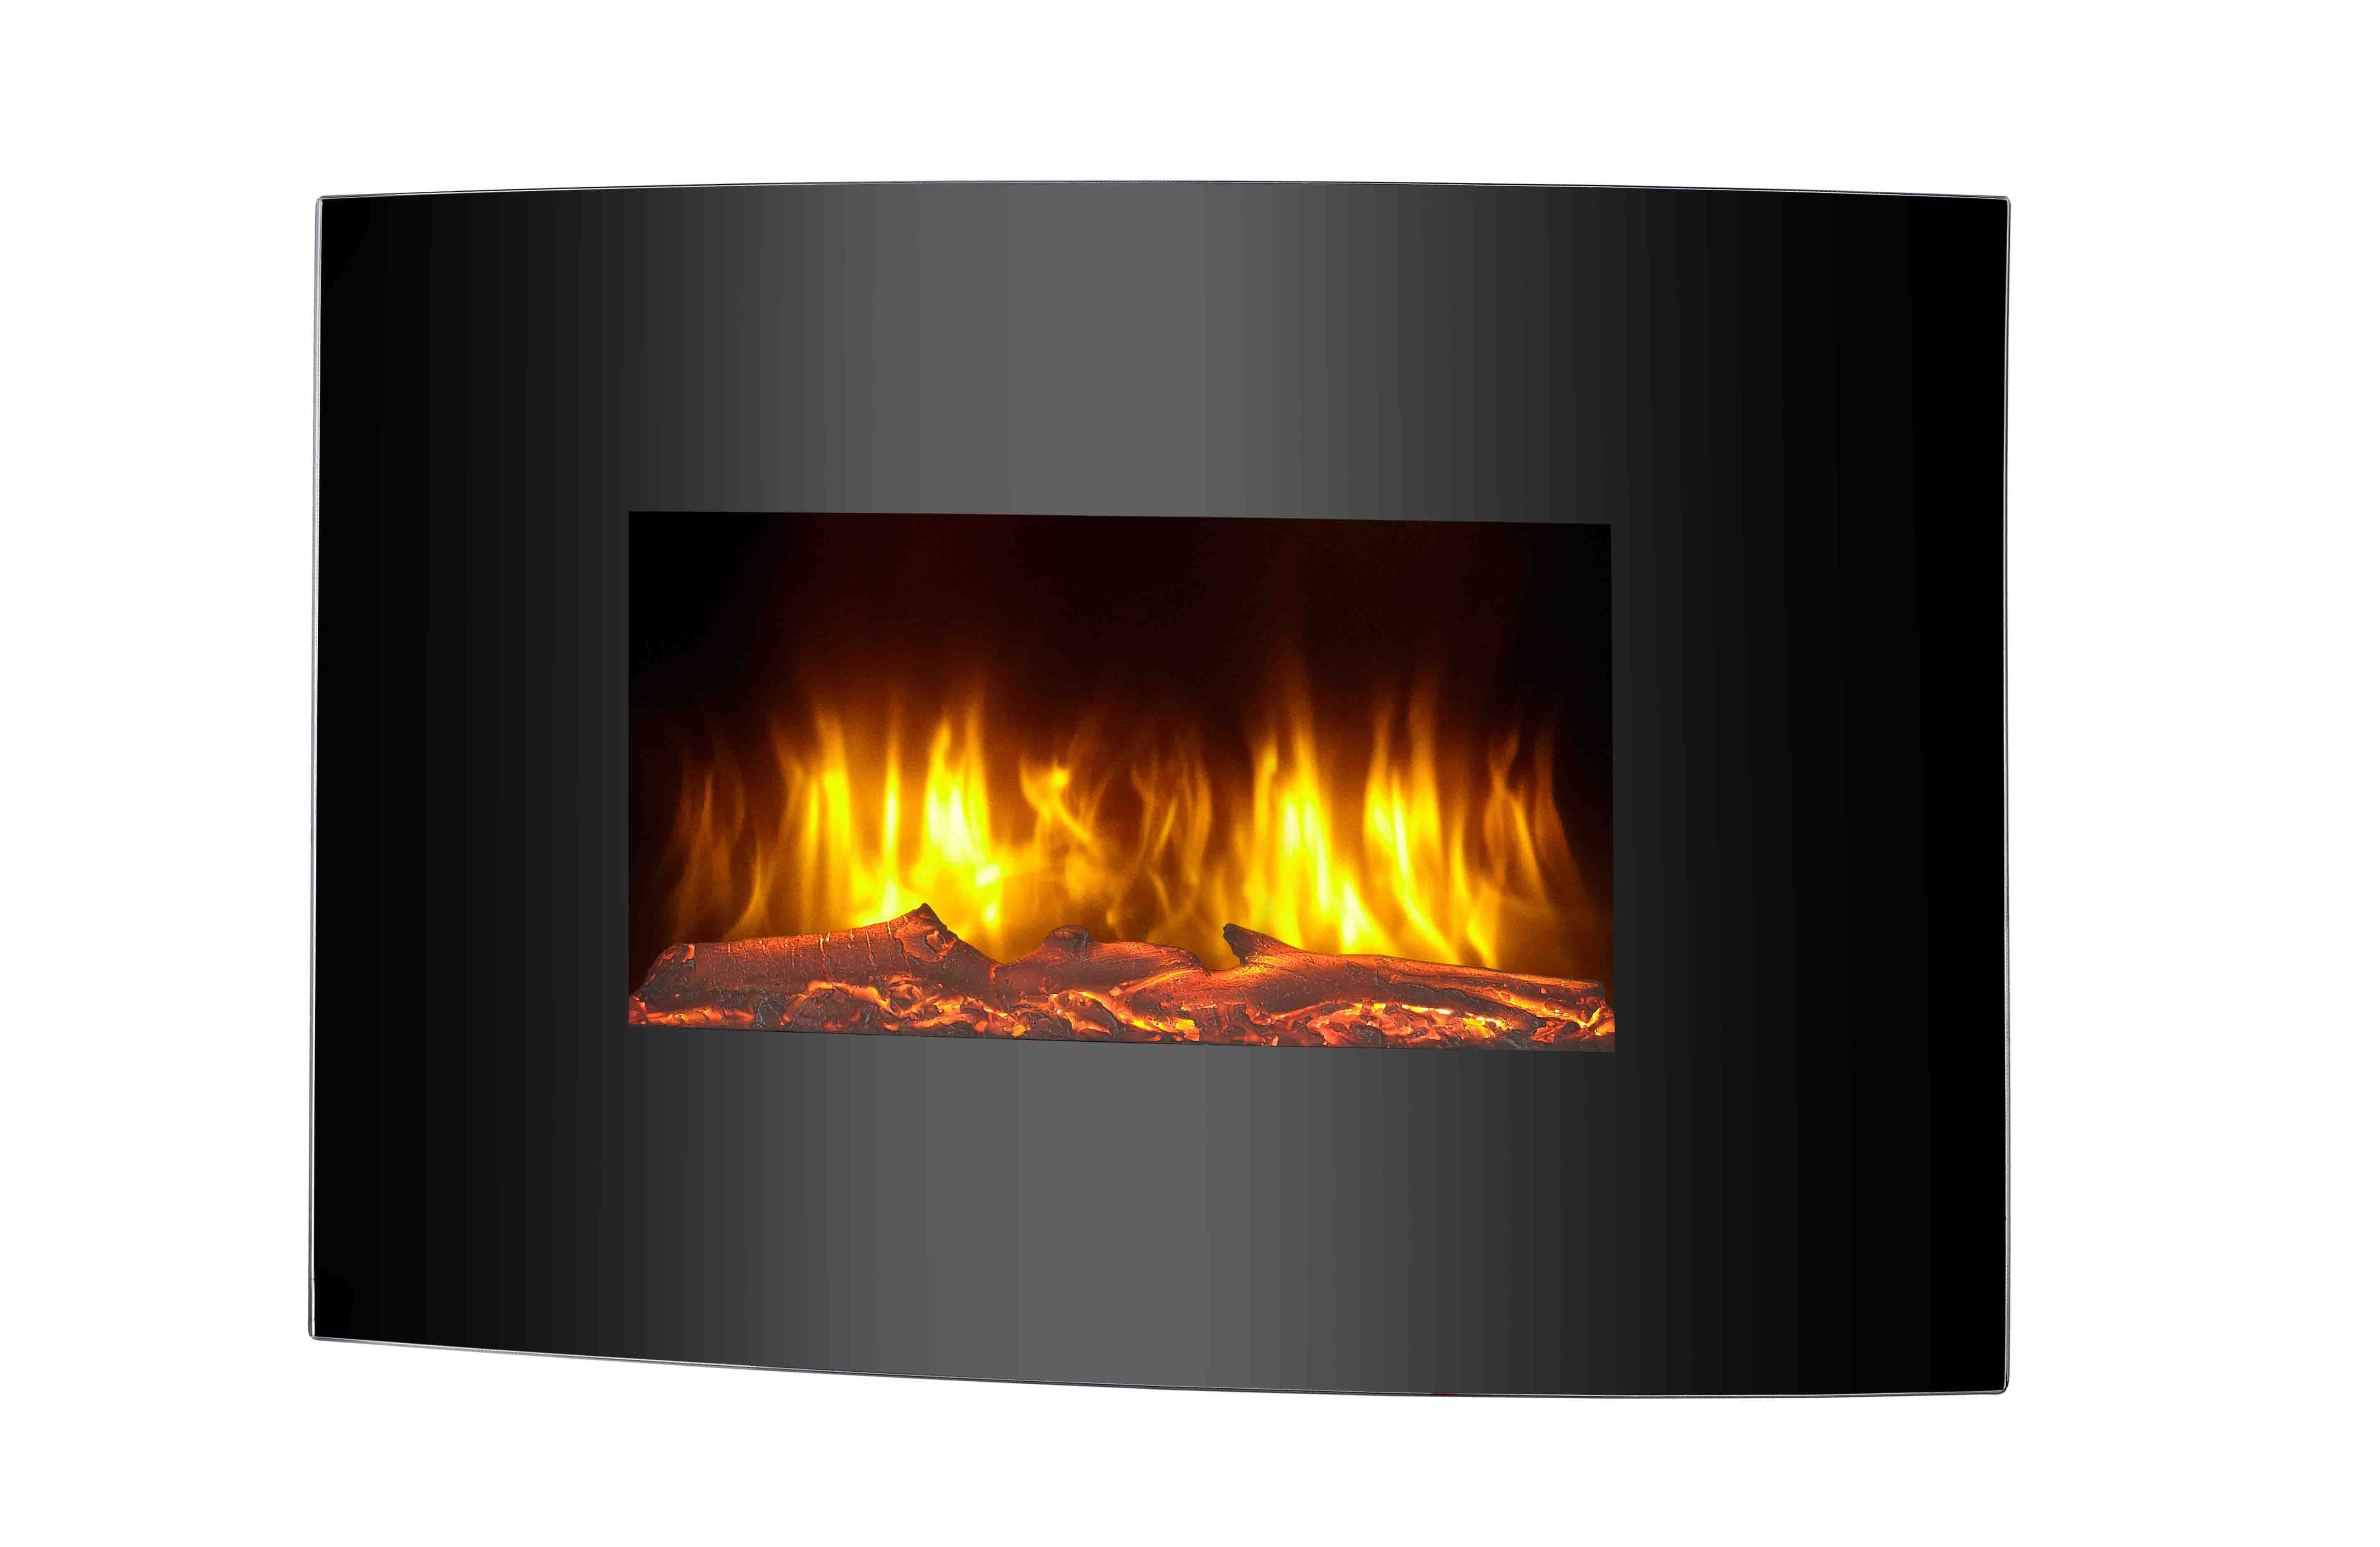 LED Curved Glass Electric Wall Mounted Fireplace Remote Control LJF2302E-1